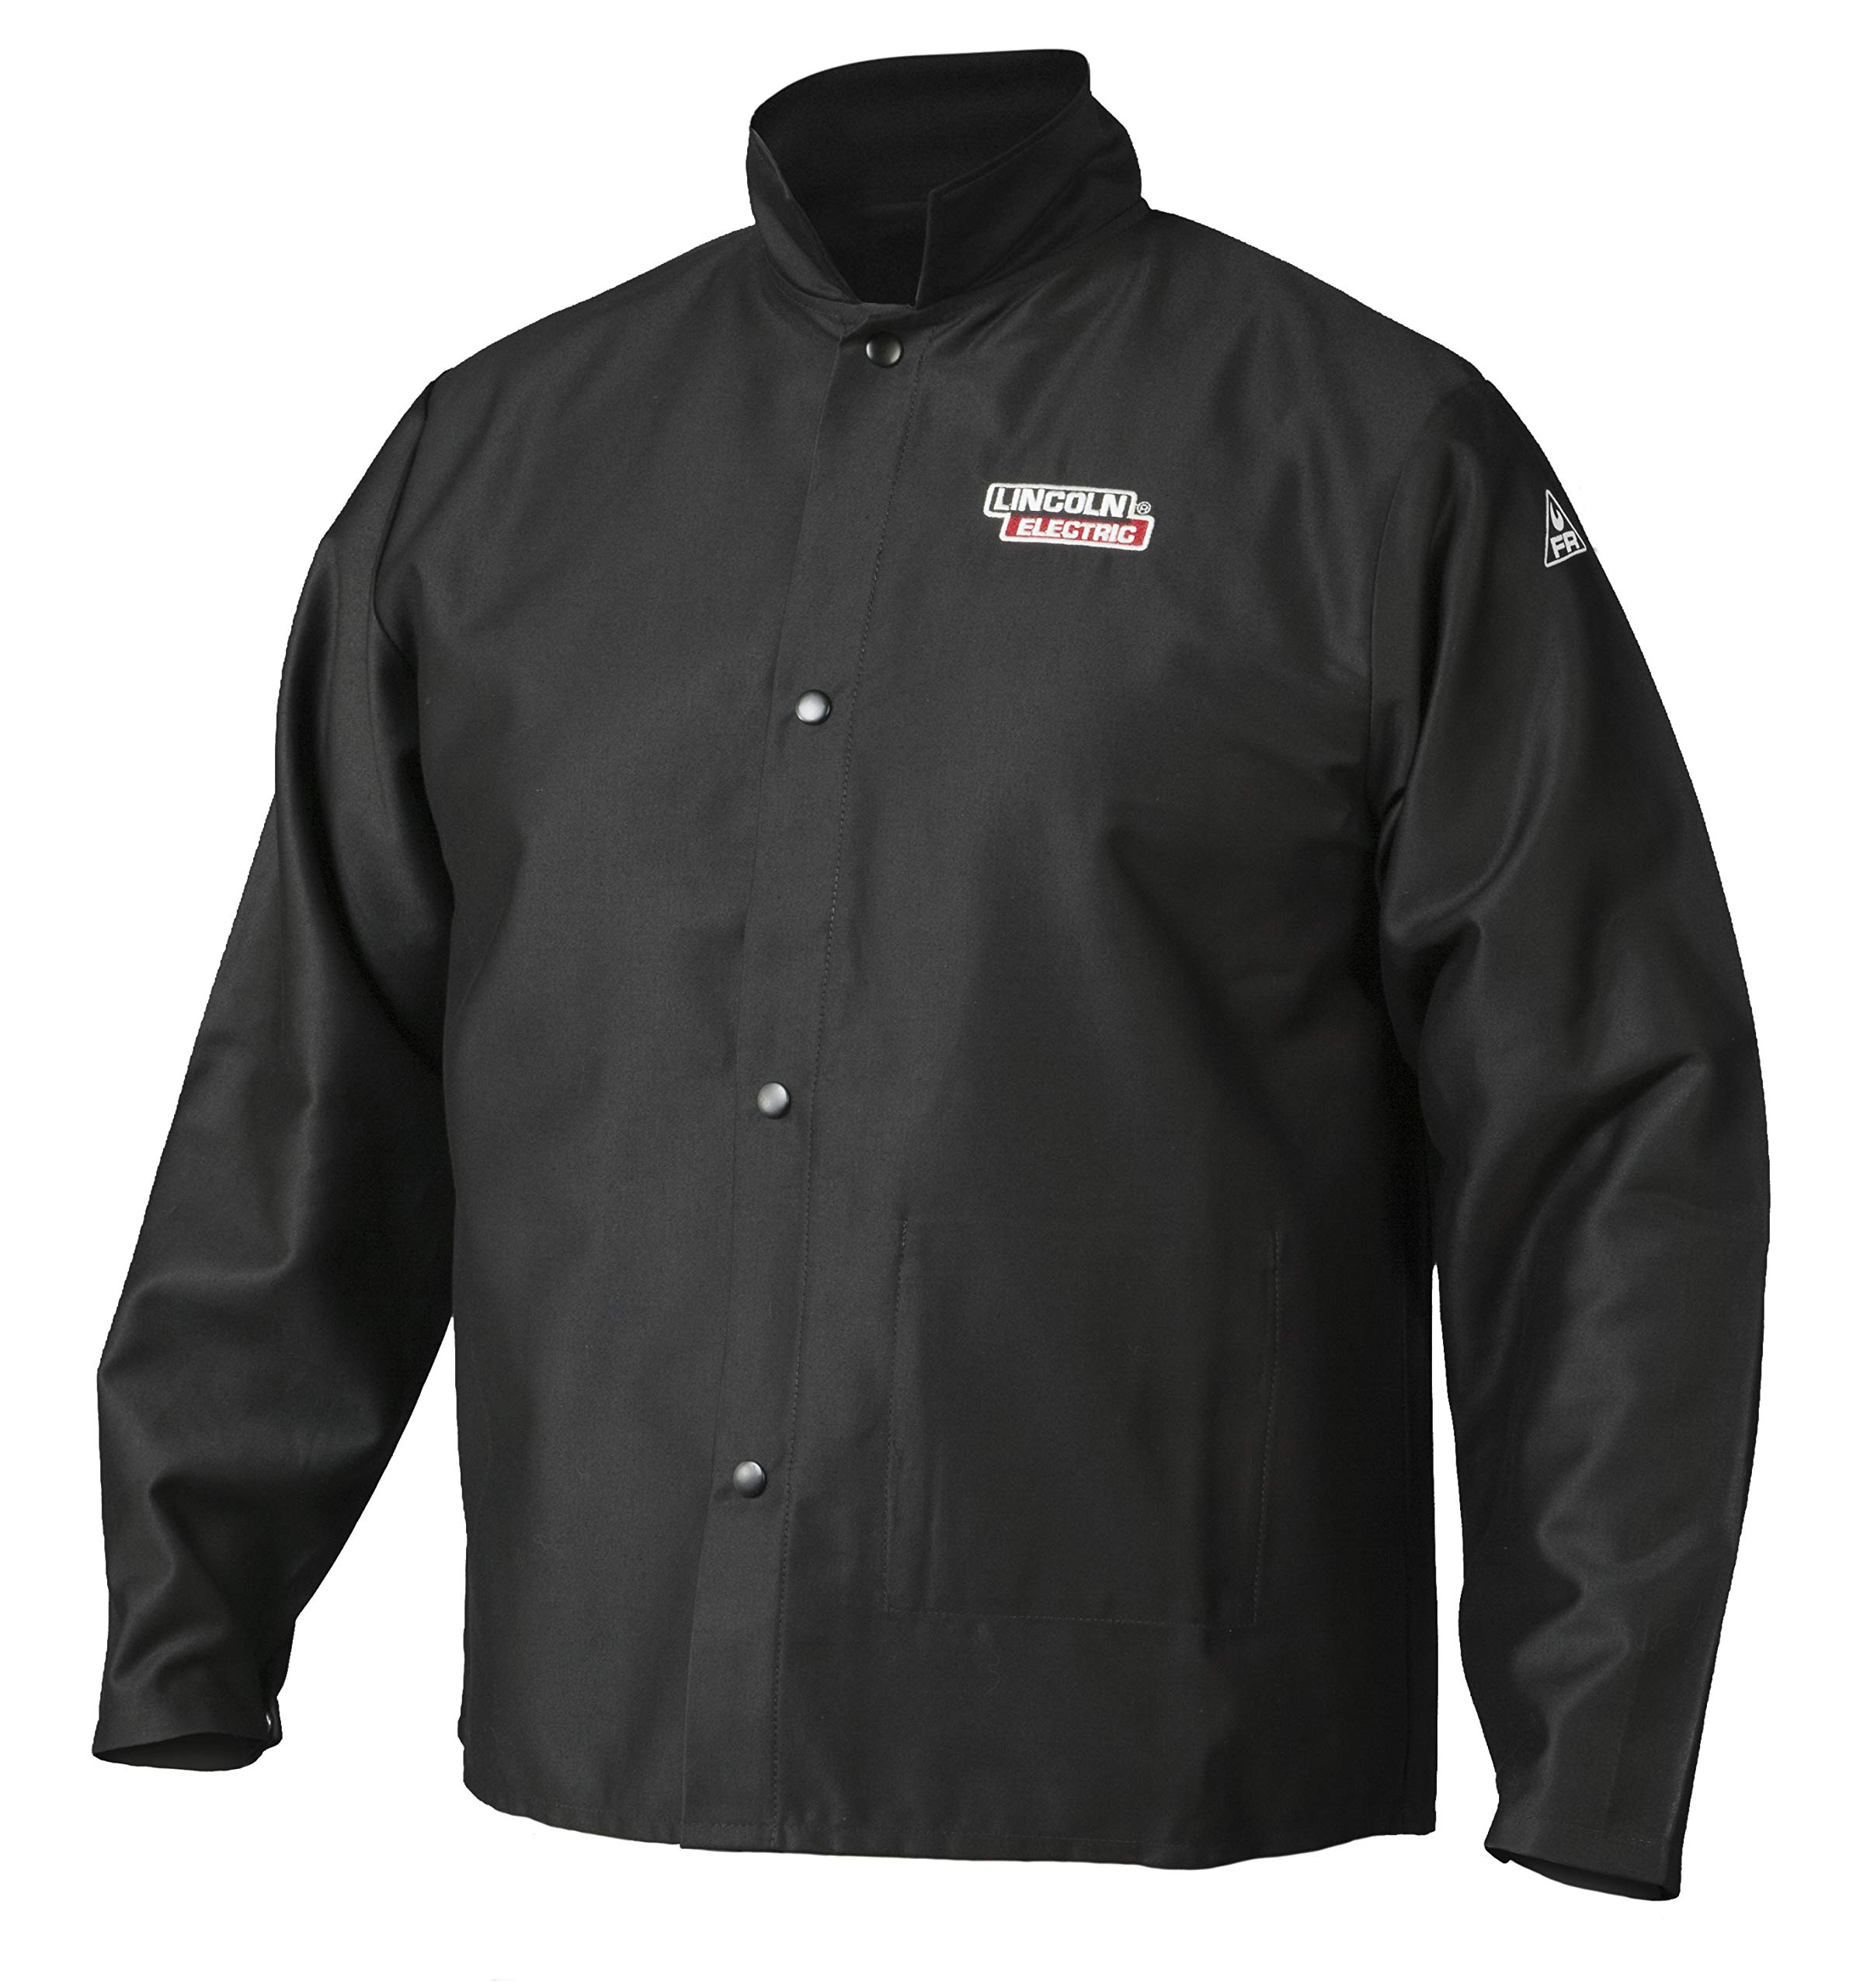 Lincoln Electric Premium Flame Resistant (FR) Cotton Welding Jacket | Comfortable | Black | Large | K2985-L by Lincoln Electric